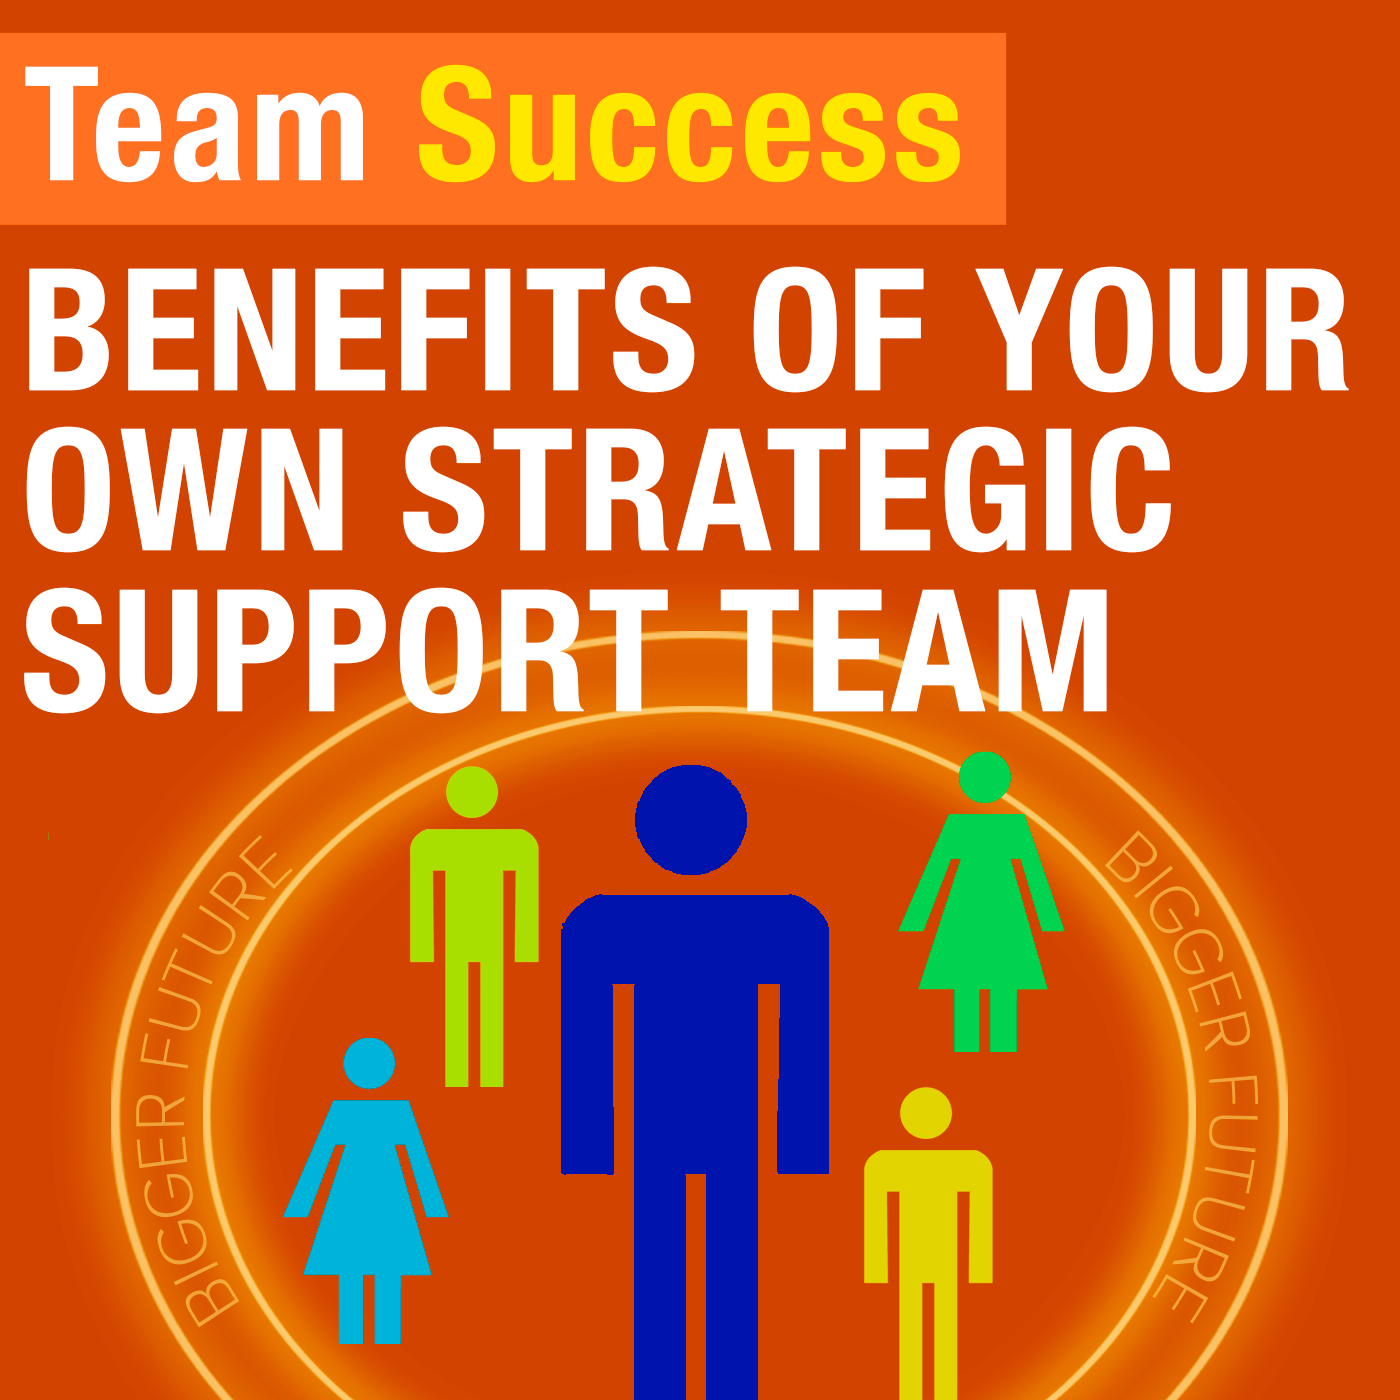 Benefits Of Your Own Strategic Support Team